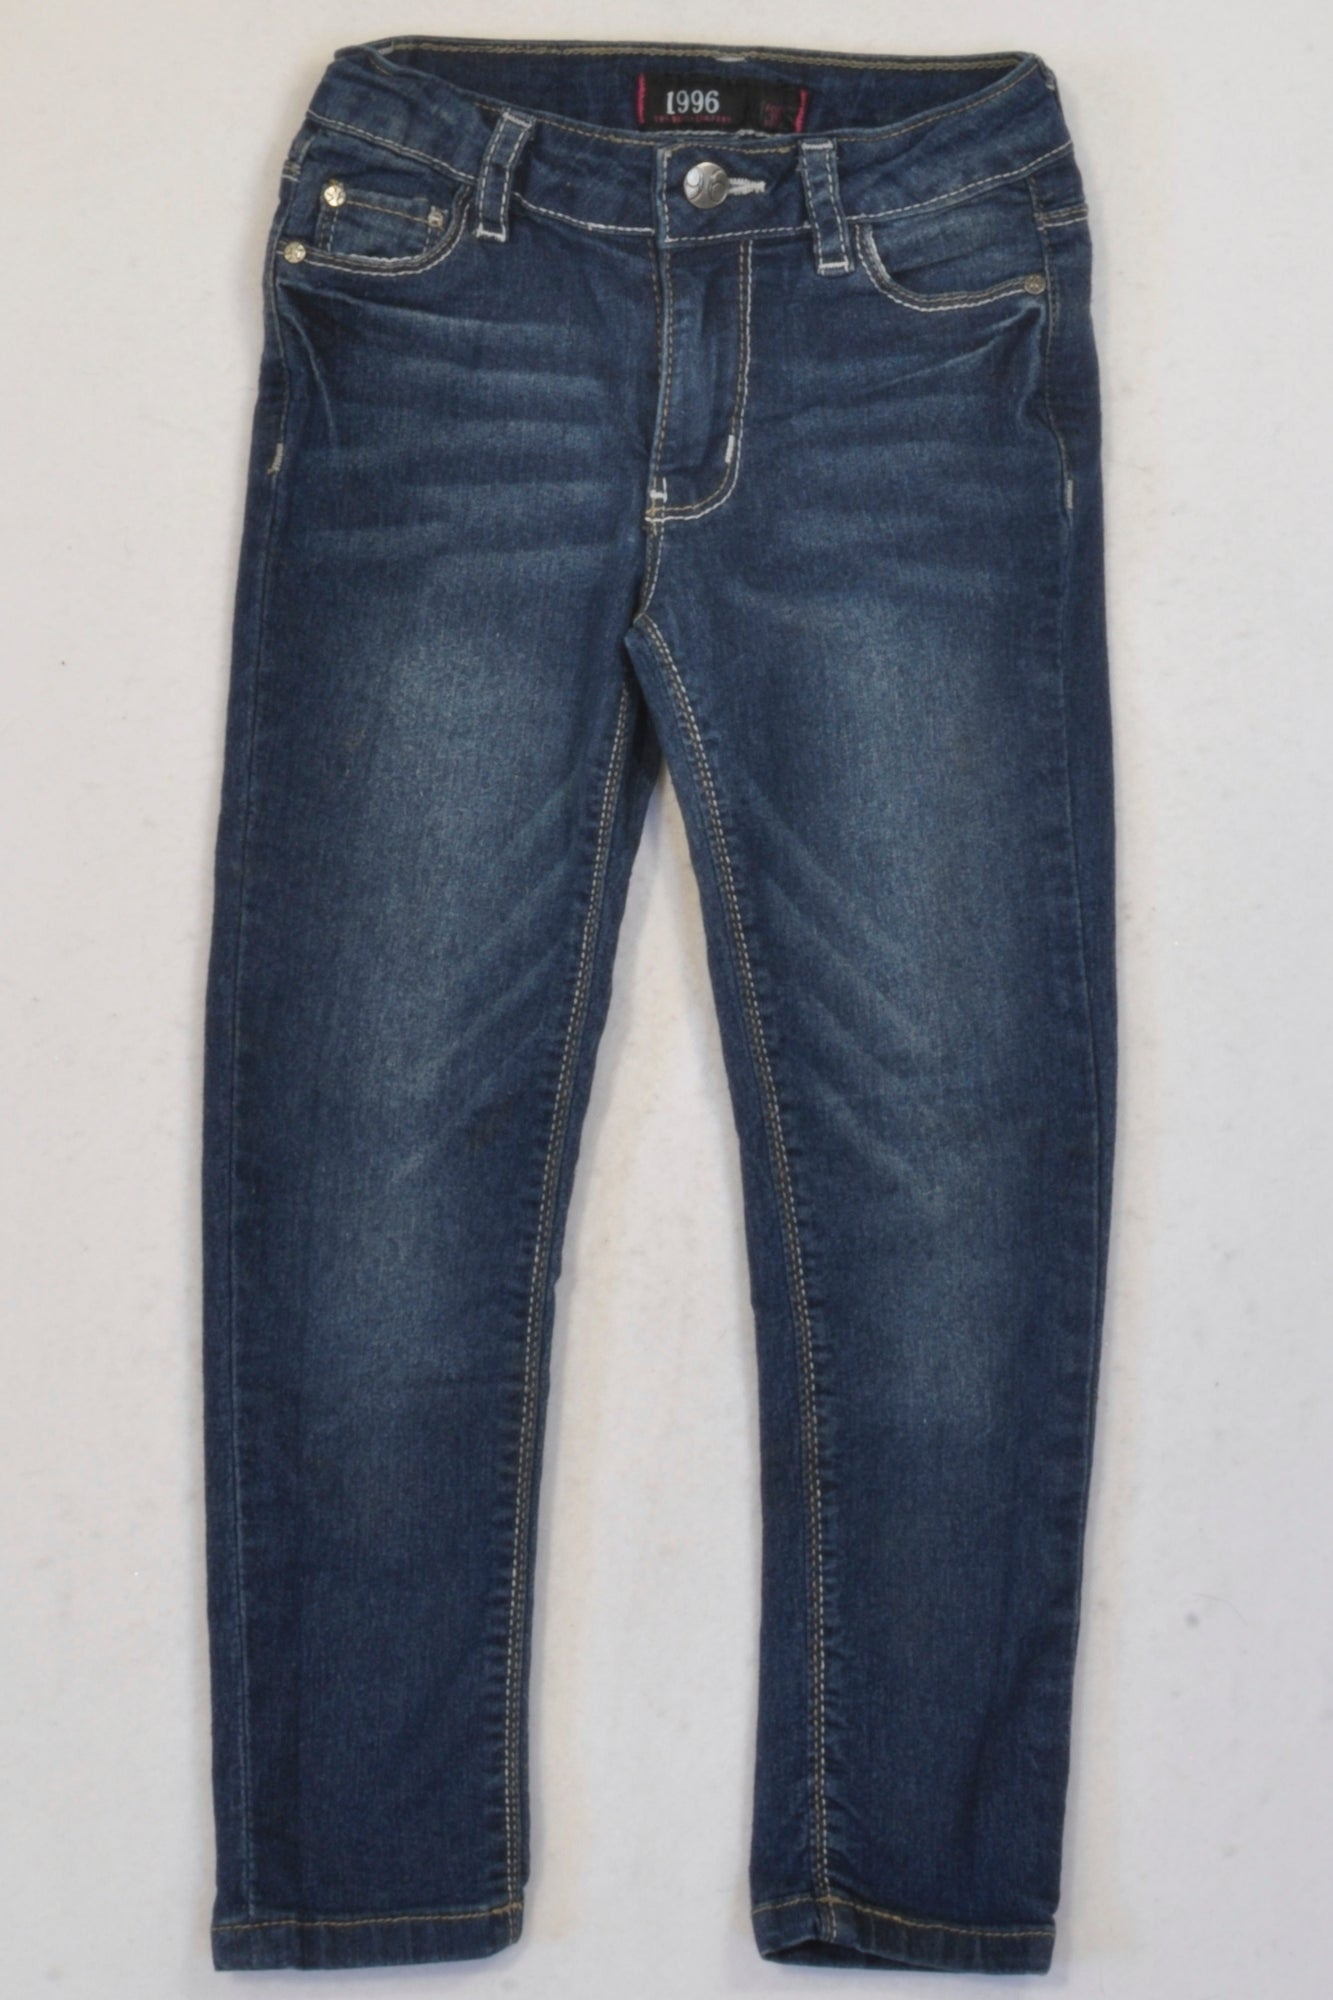 1996 Denim Skinny Stretch Jeans Girls 4-5 years